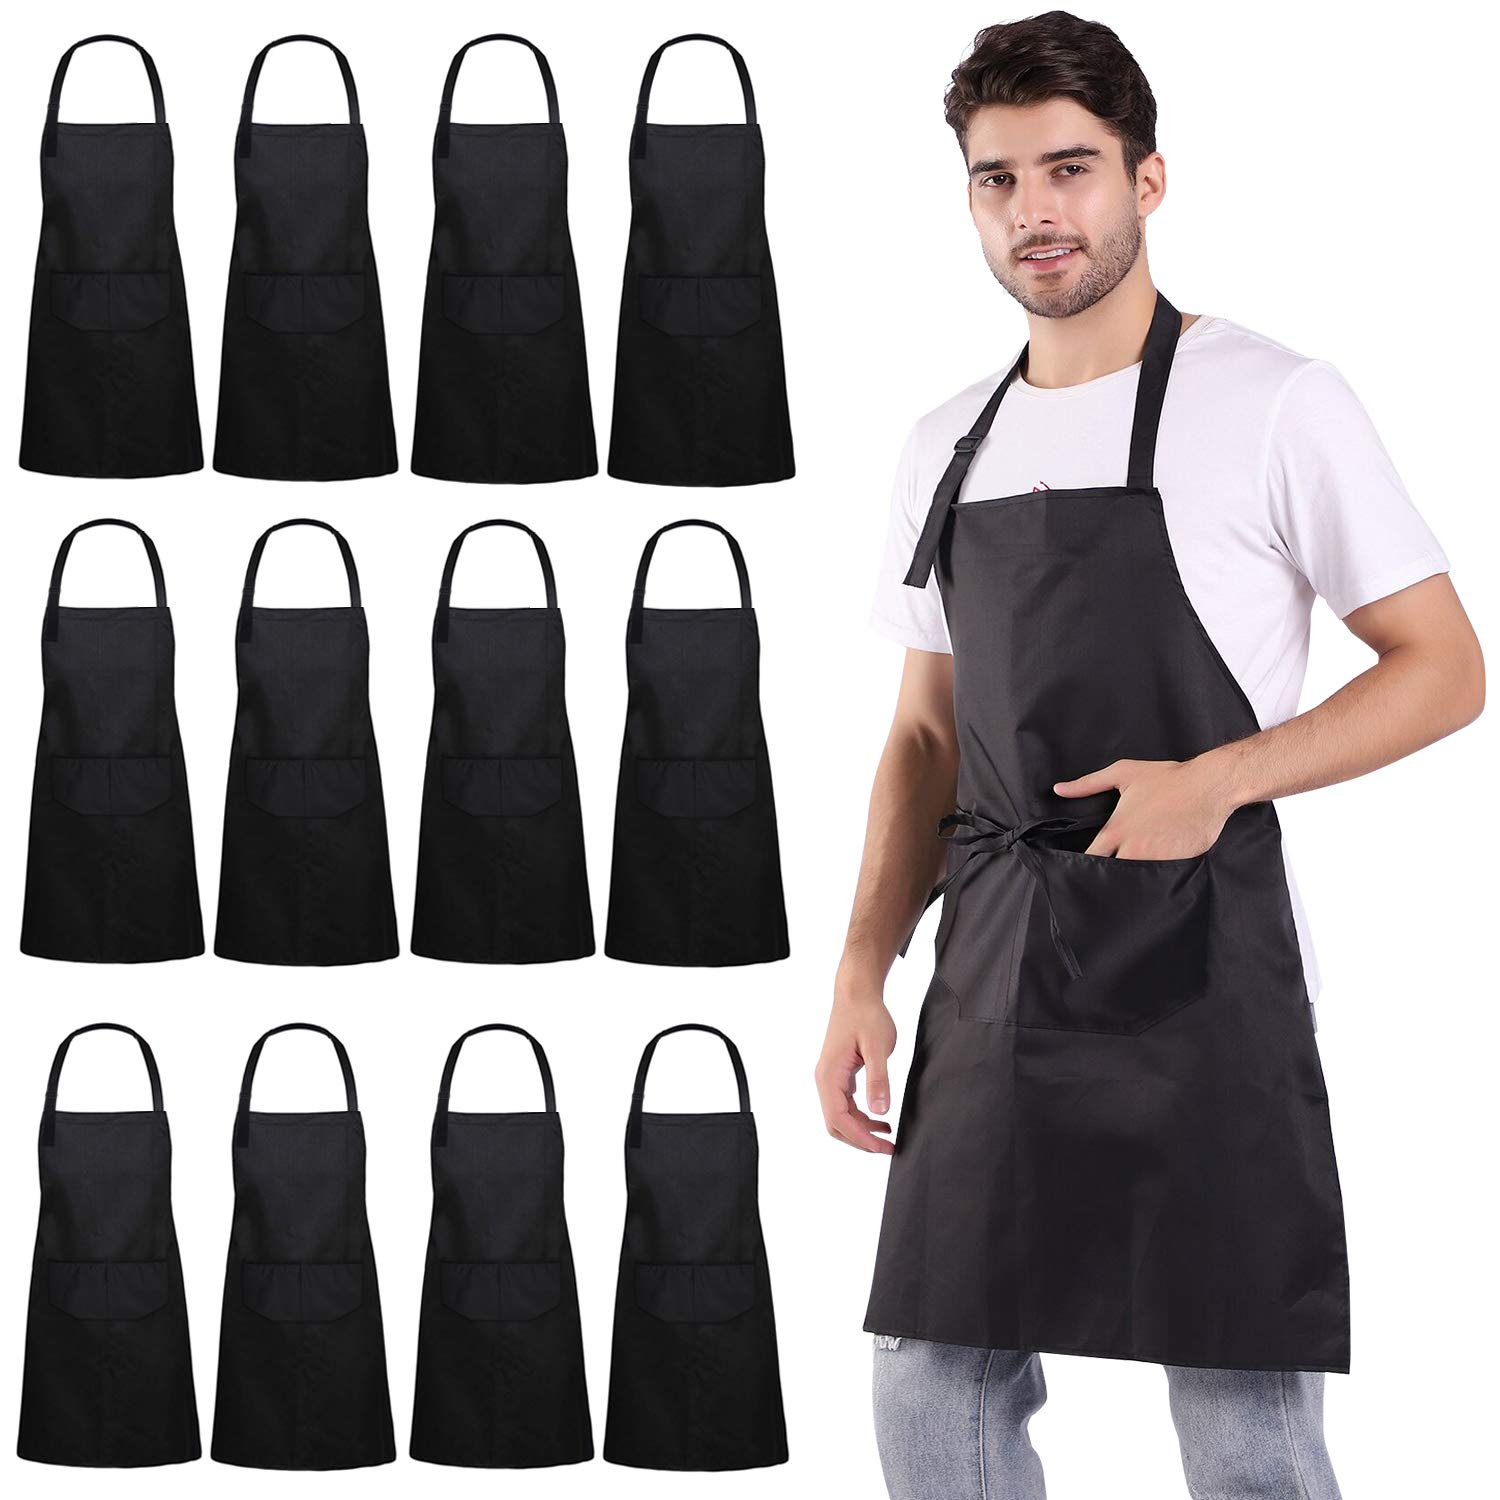 ALIPOBO 12 Pack Aprons for Women and Men, Kitchen Chef Apron with 2 Pockets and 40'' Long Ties, Adjustable Bib Apron for Cooking, Serving - 32'' x 28'' - Black by ALIPOBO